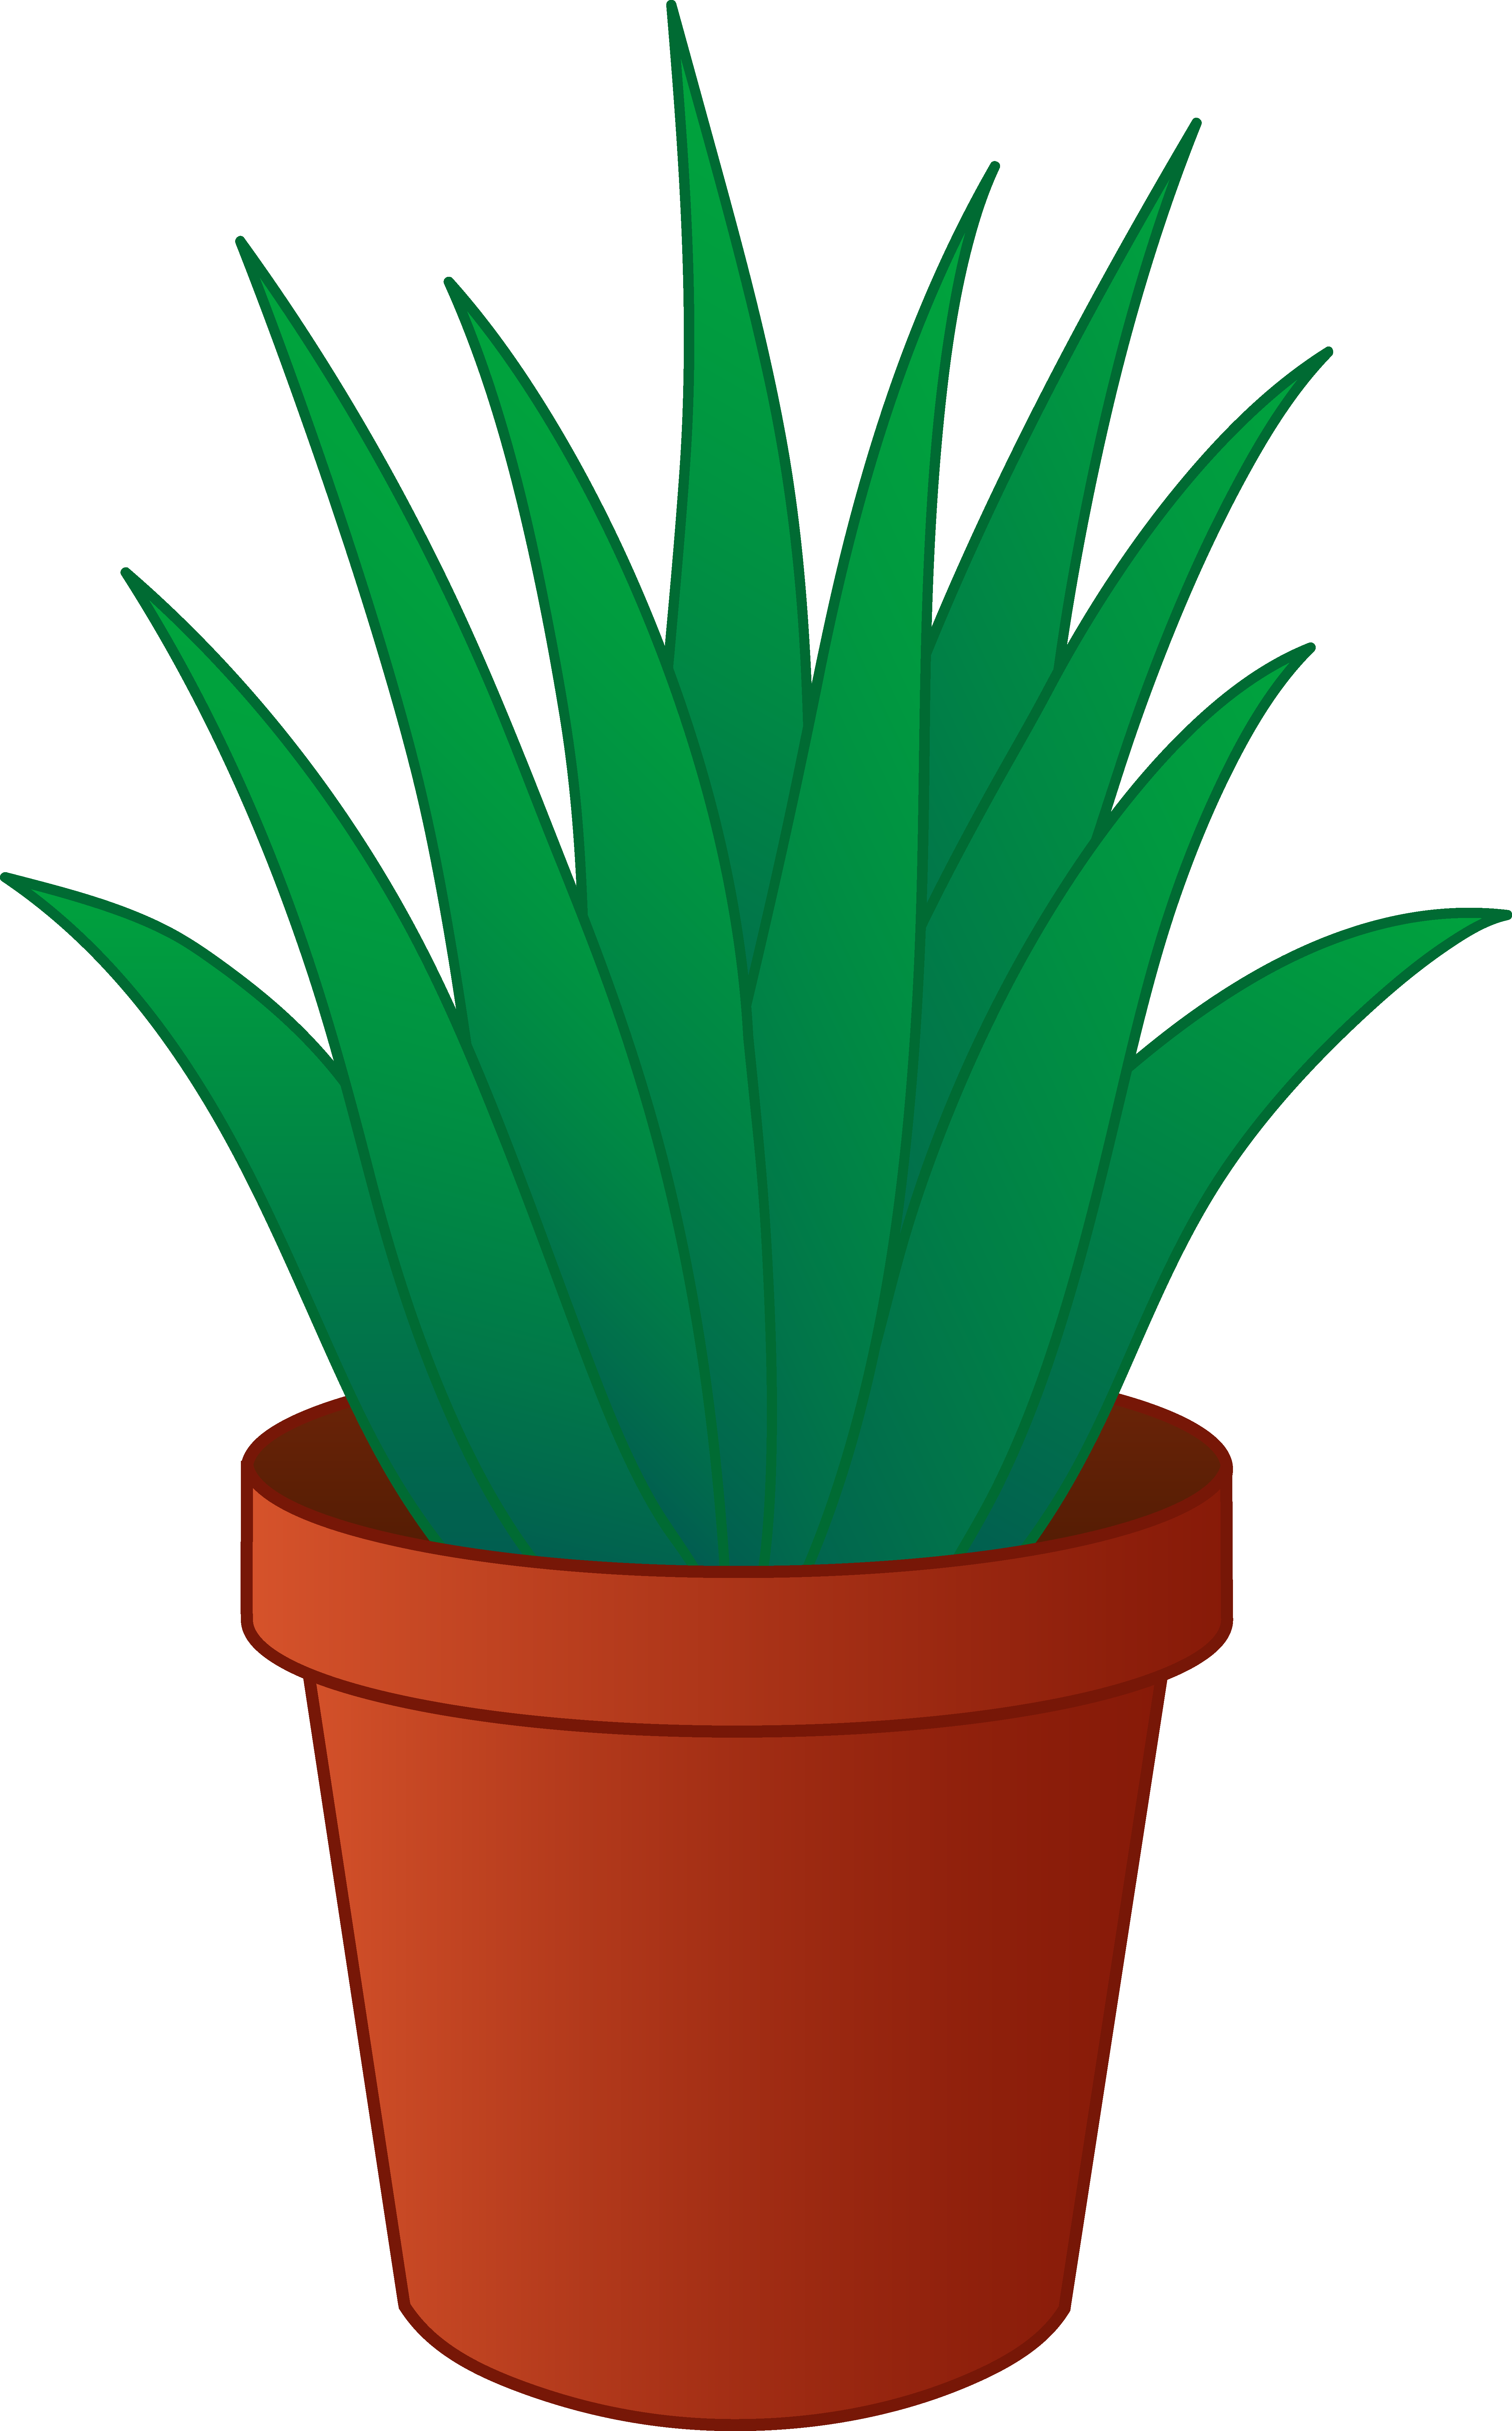 ... Plant Images Free | Free Download Cl-... Plant Images Free | Free Download Clip Art | Free Clip Art | on .-13